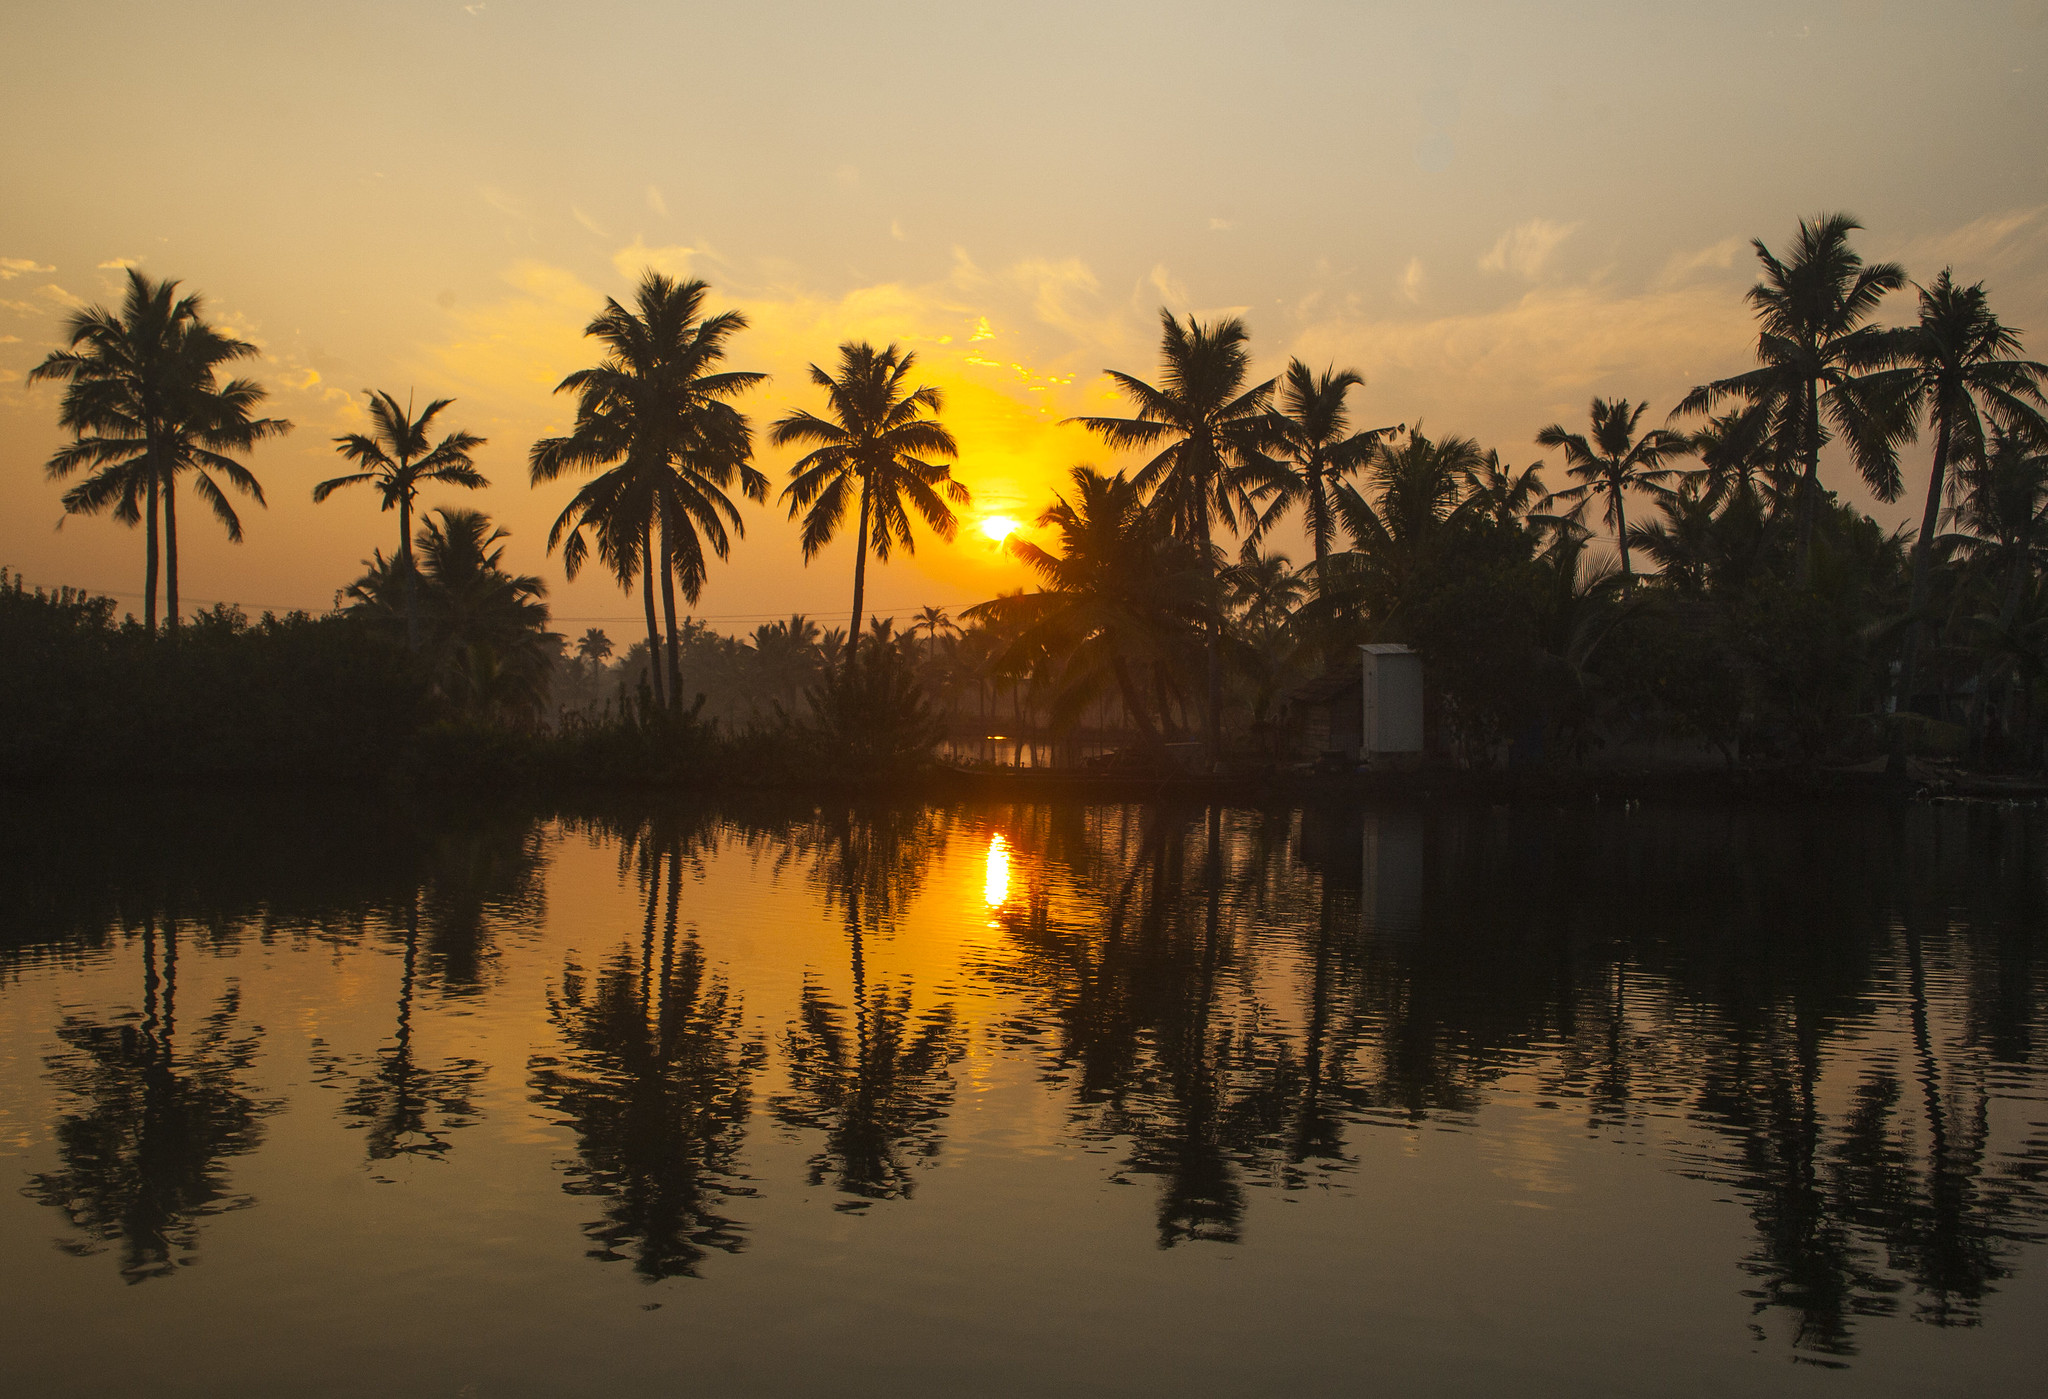 Sunrise, Munroe Island, Kerala, India